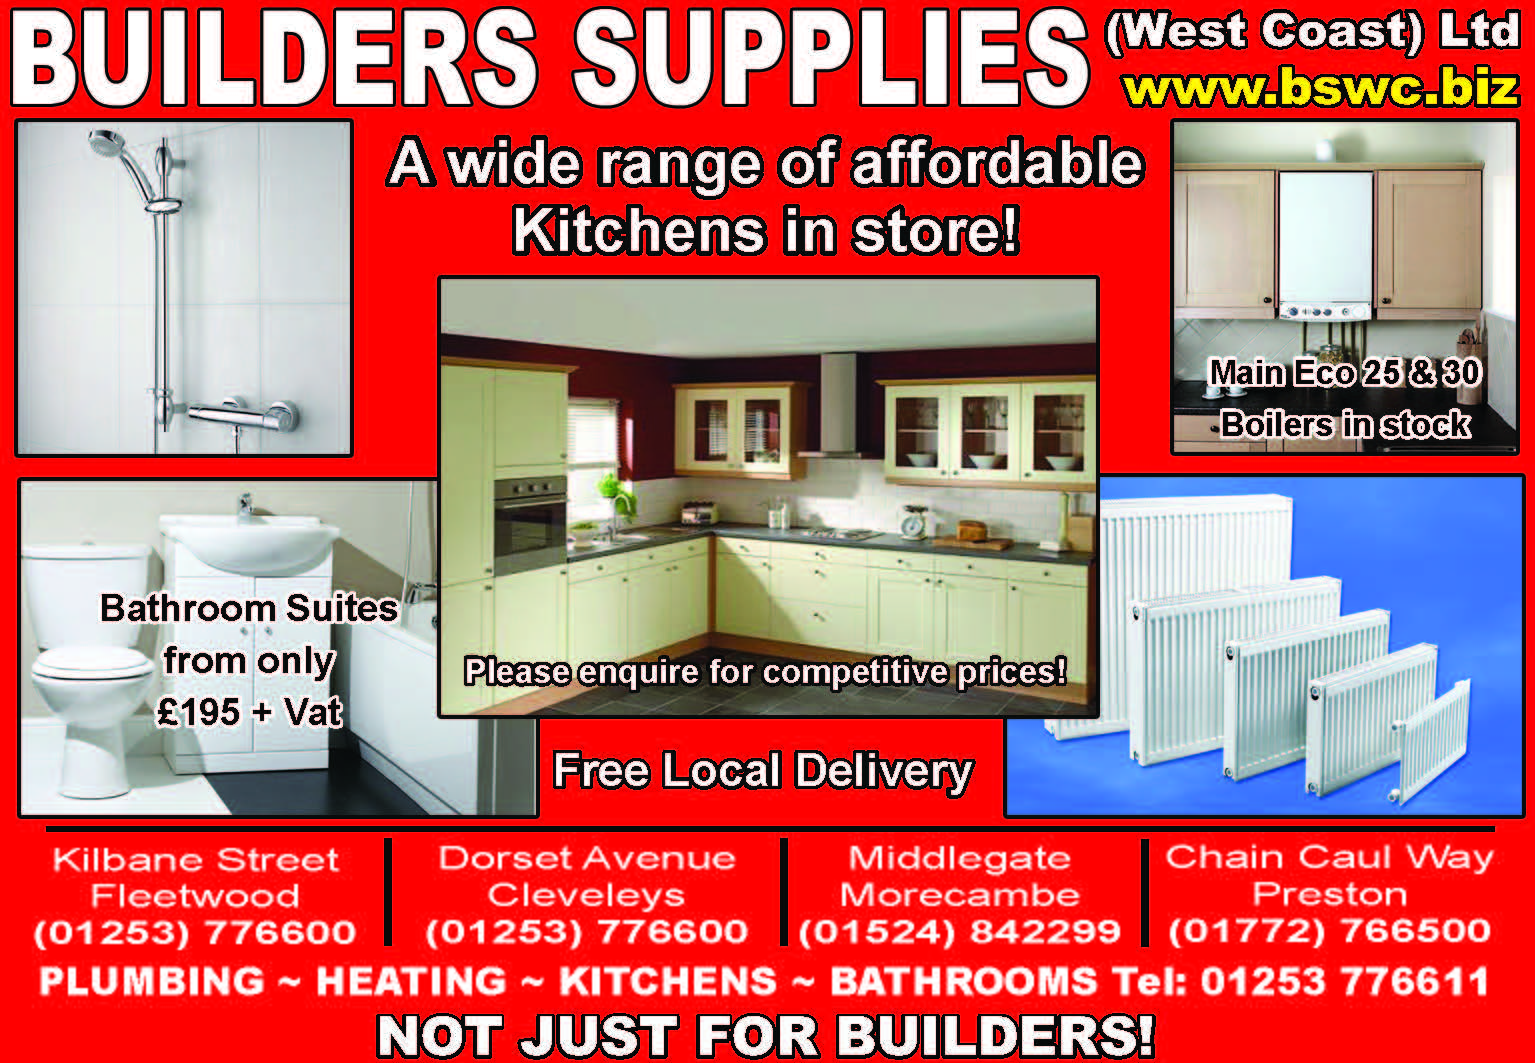 Plumbing, heating, Kitchens and bathrooms from Builders Supplies